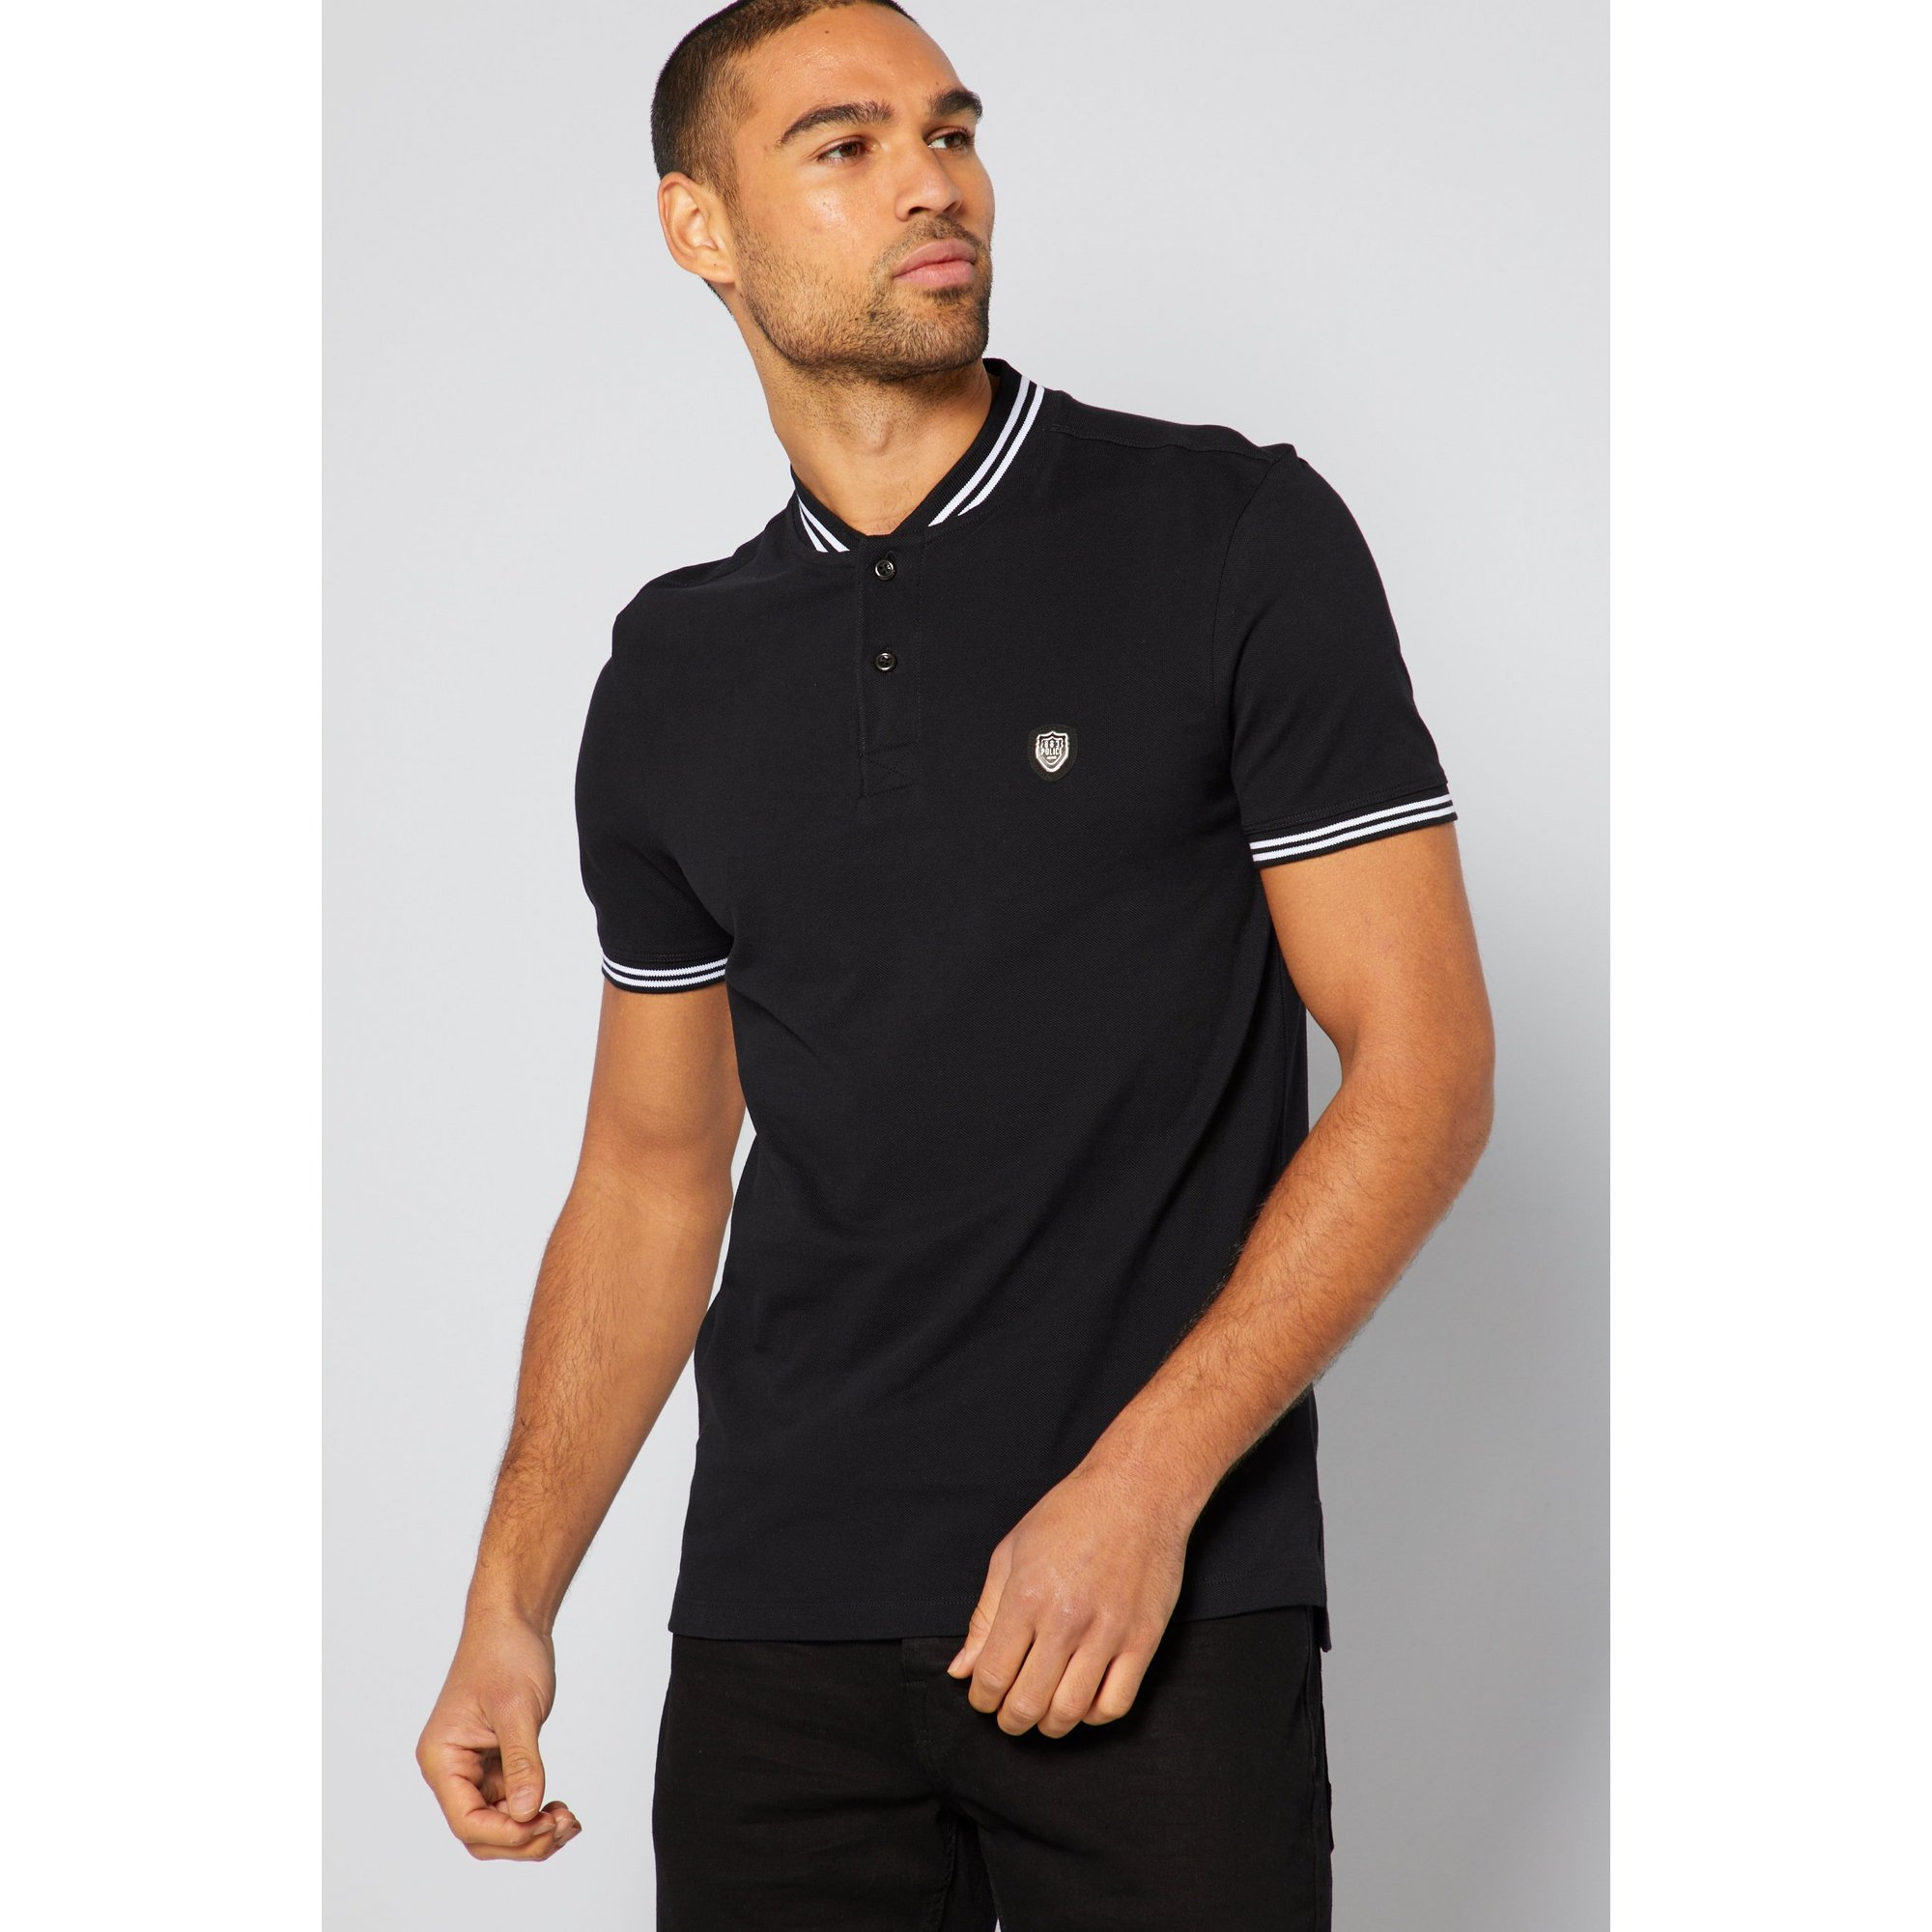 Image of 883 Police Tipped Black Polo Shirt